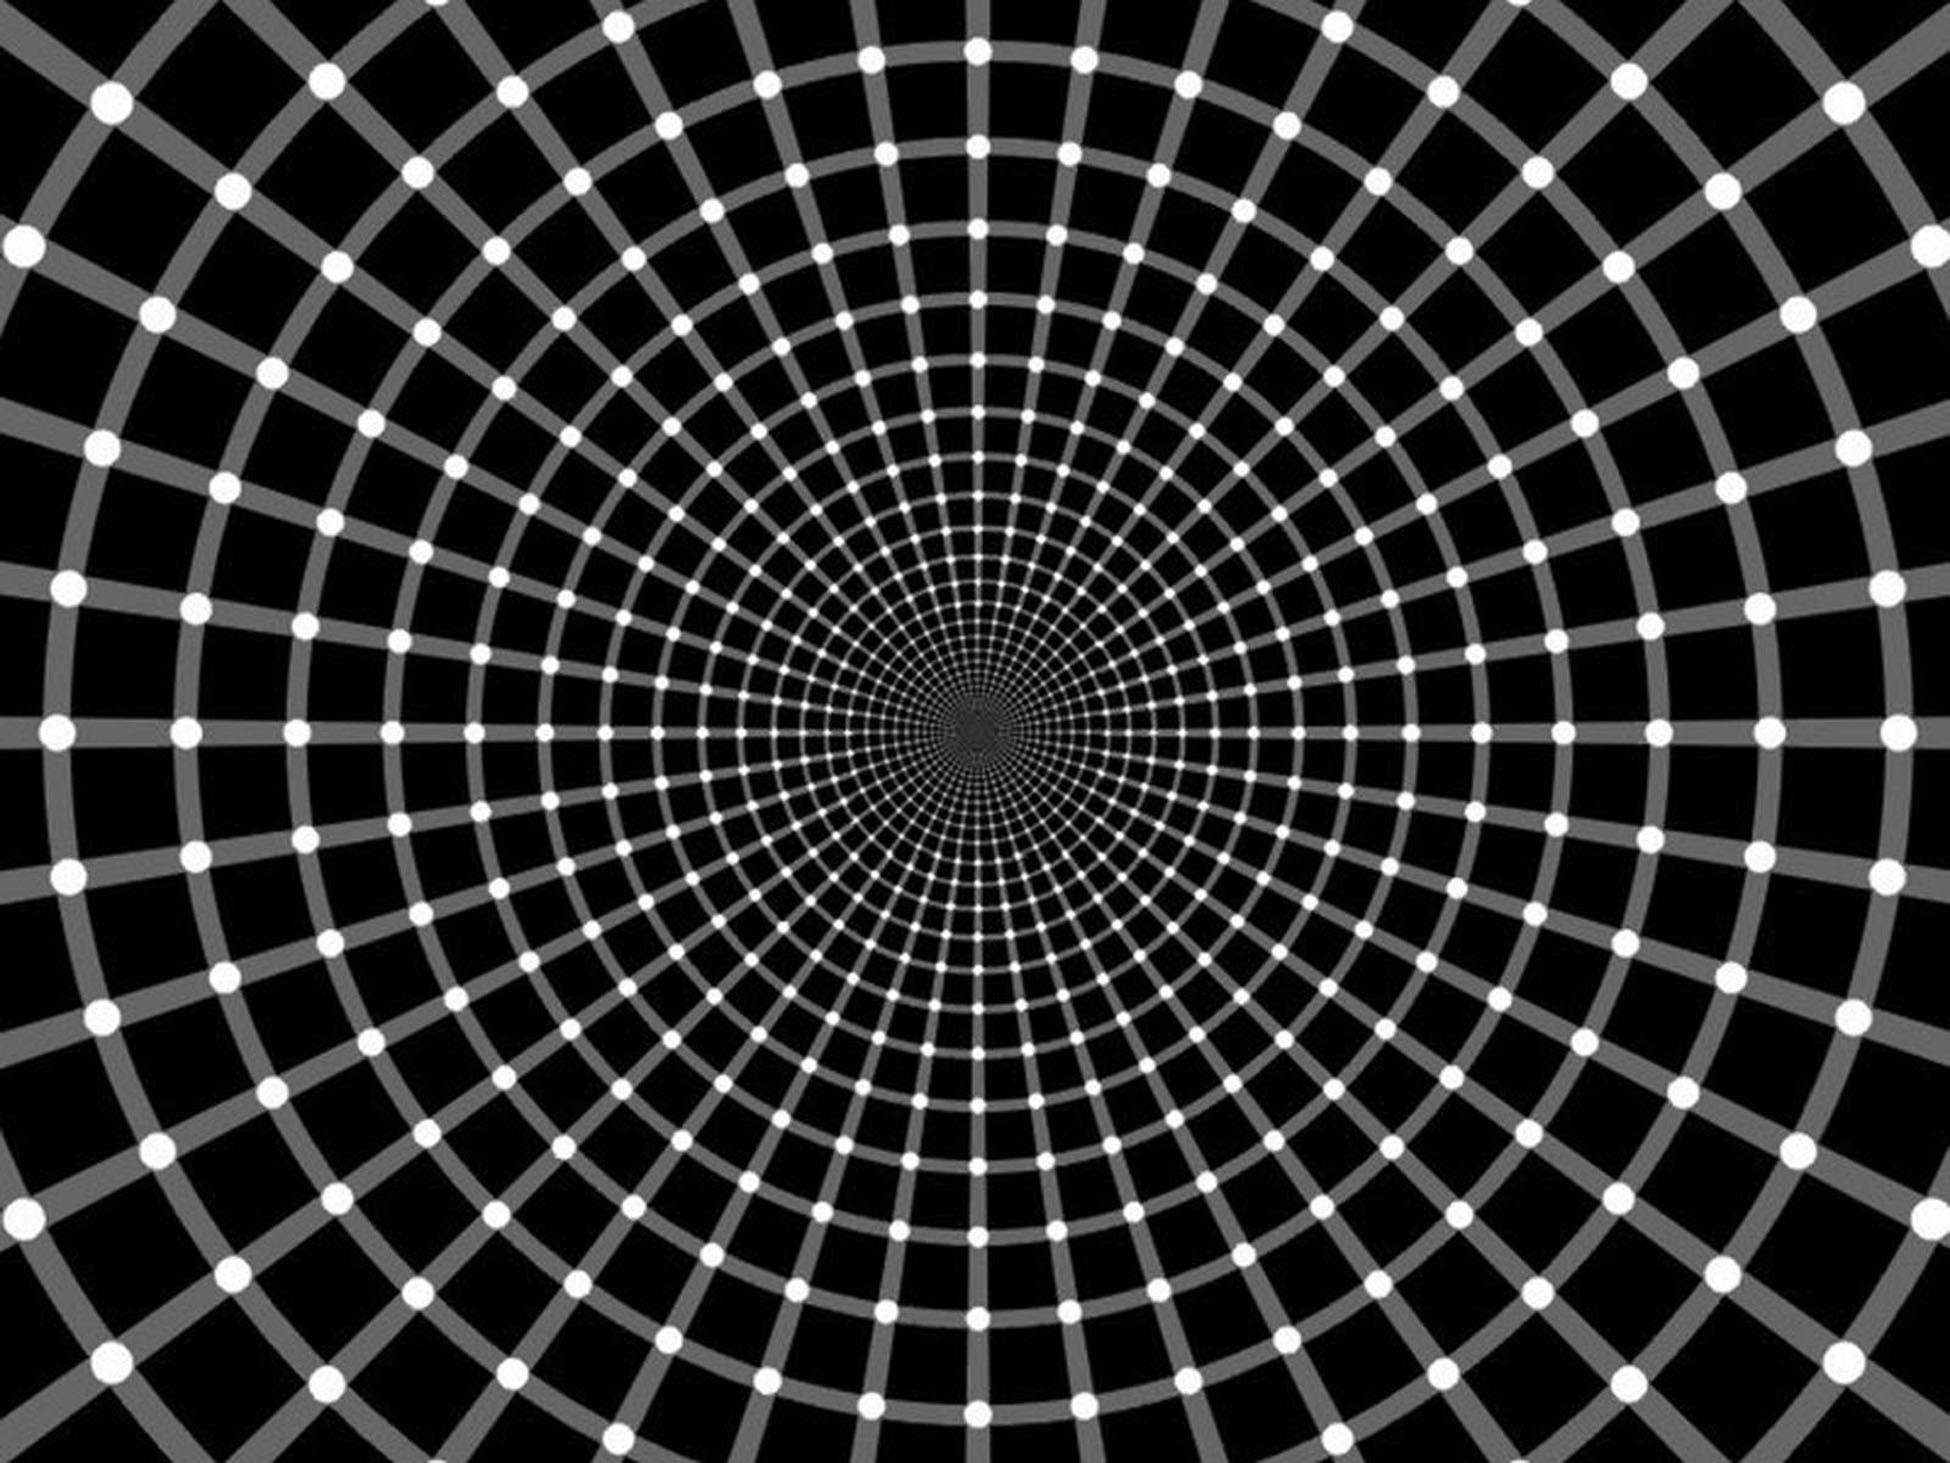 Trippy Iphone 6 Wallpaper 69 Images